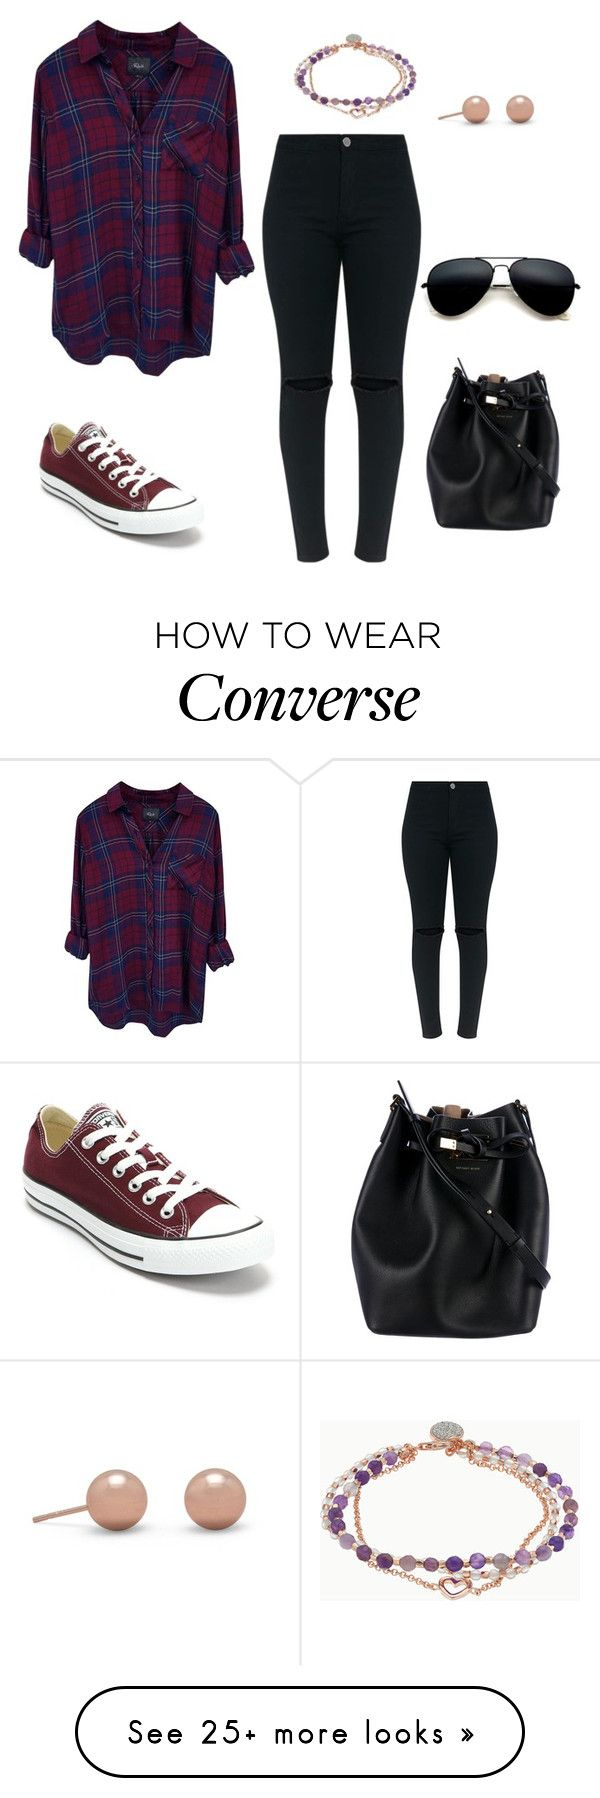 """""""Untitled #1146"""" by kayla250 on Polyvore featuring Rails, Converse, Michael Kors and Love This Life"""